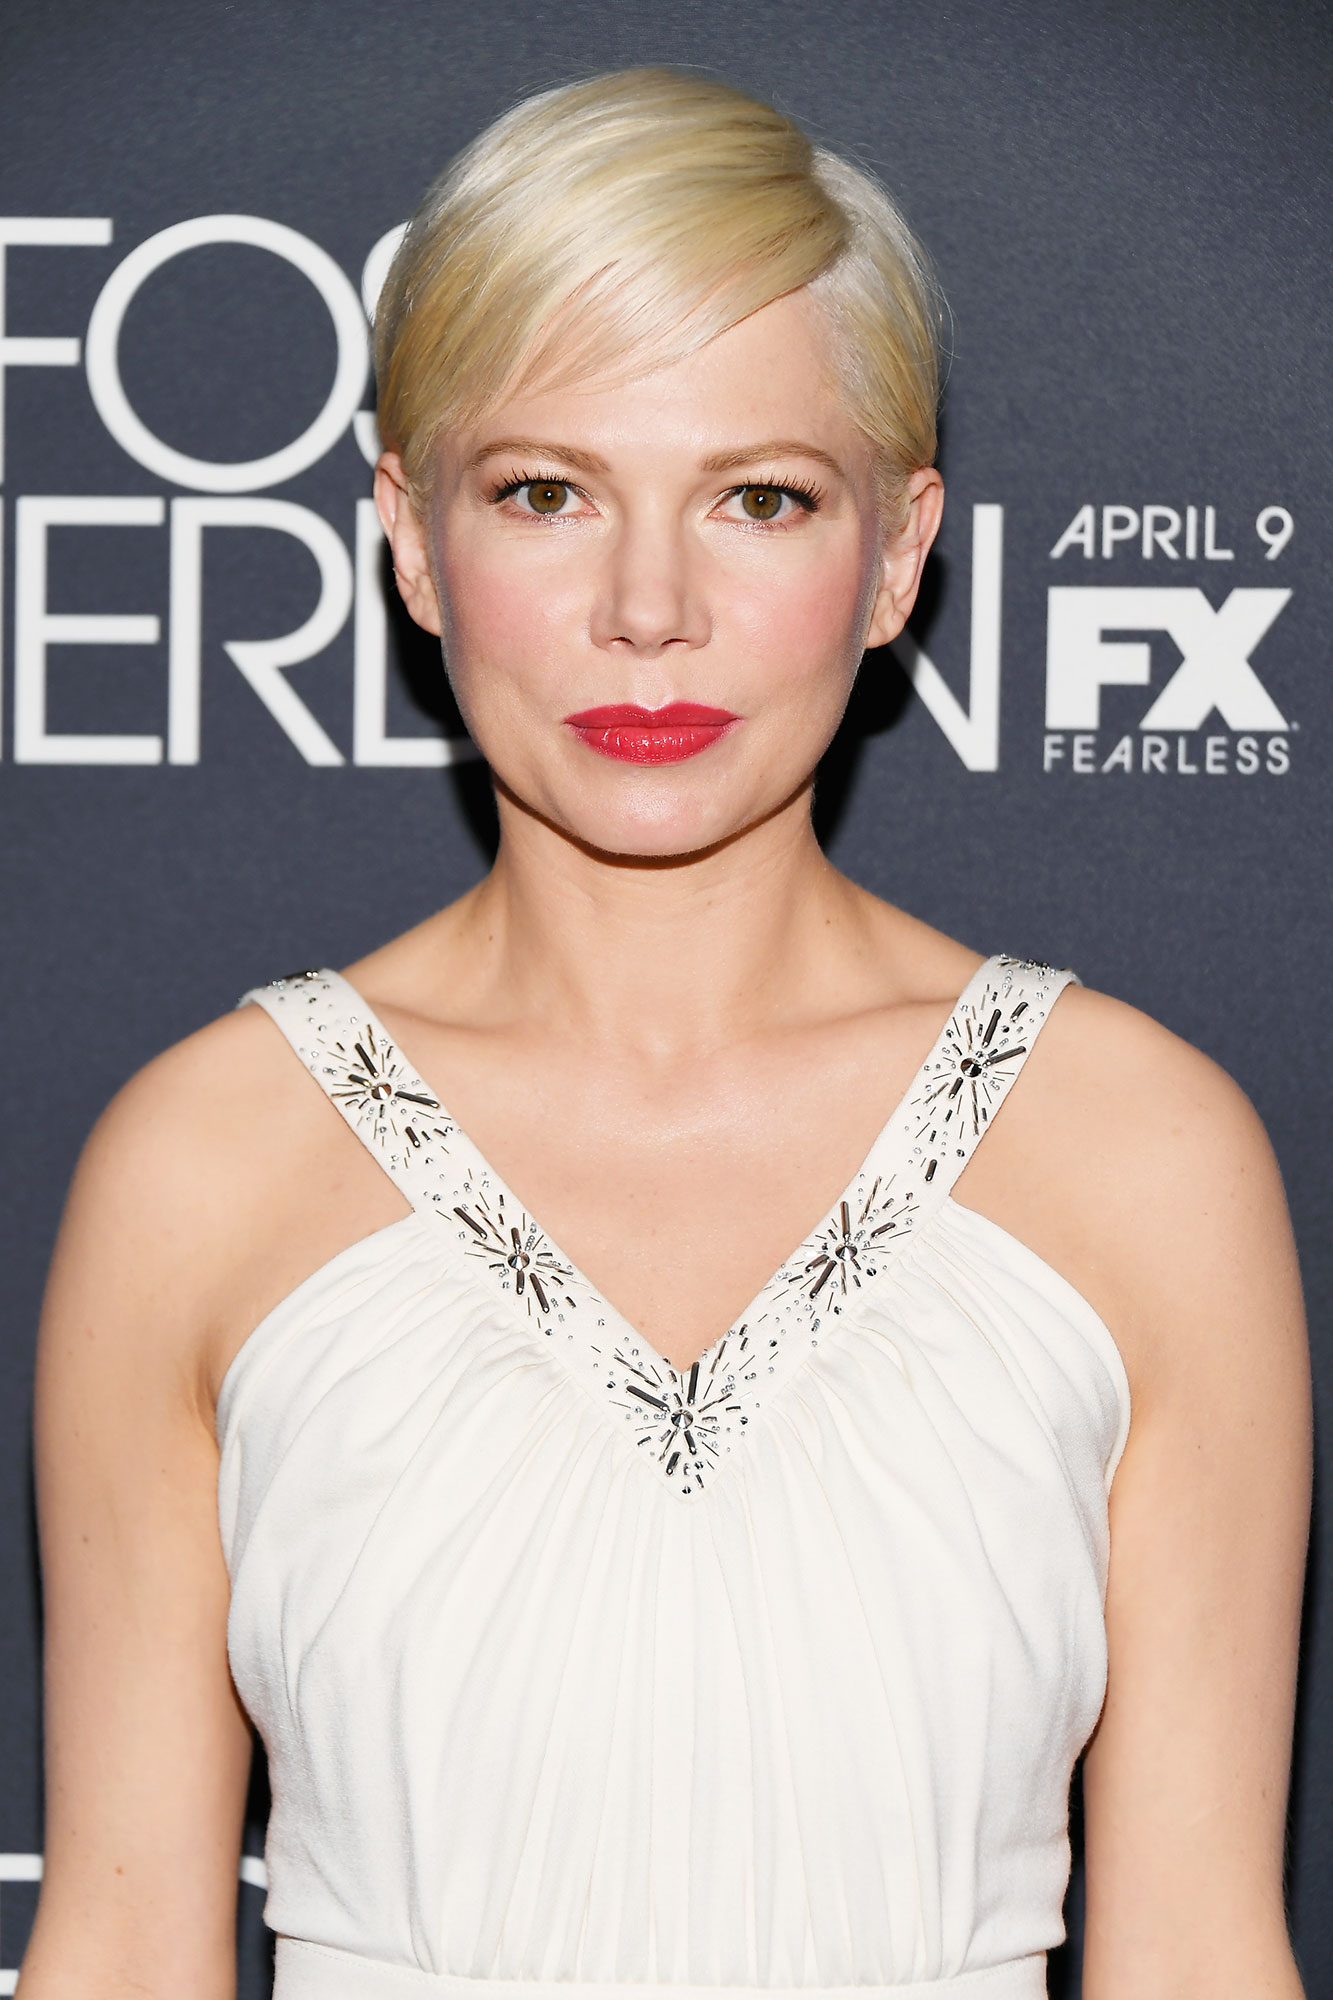 Michelle Williams' Peachy-Pink Pout - The actress' glossy coral lip at the Fosse/Verdon premiere on Monday, April 8, felt fresh and modern, and makeup artist Angela Levin used the new Dior Addict Stellar Shine lipstick in Positivity.